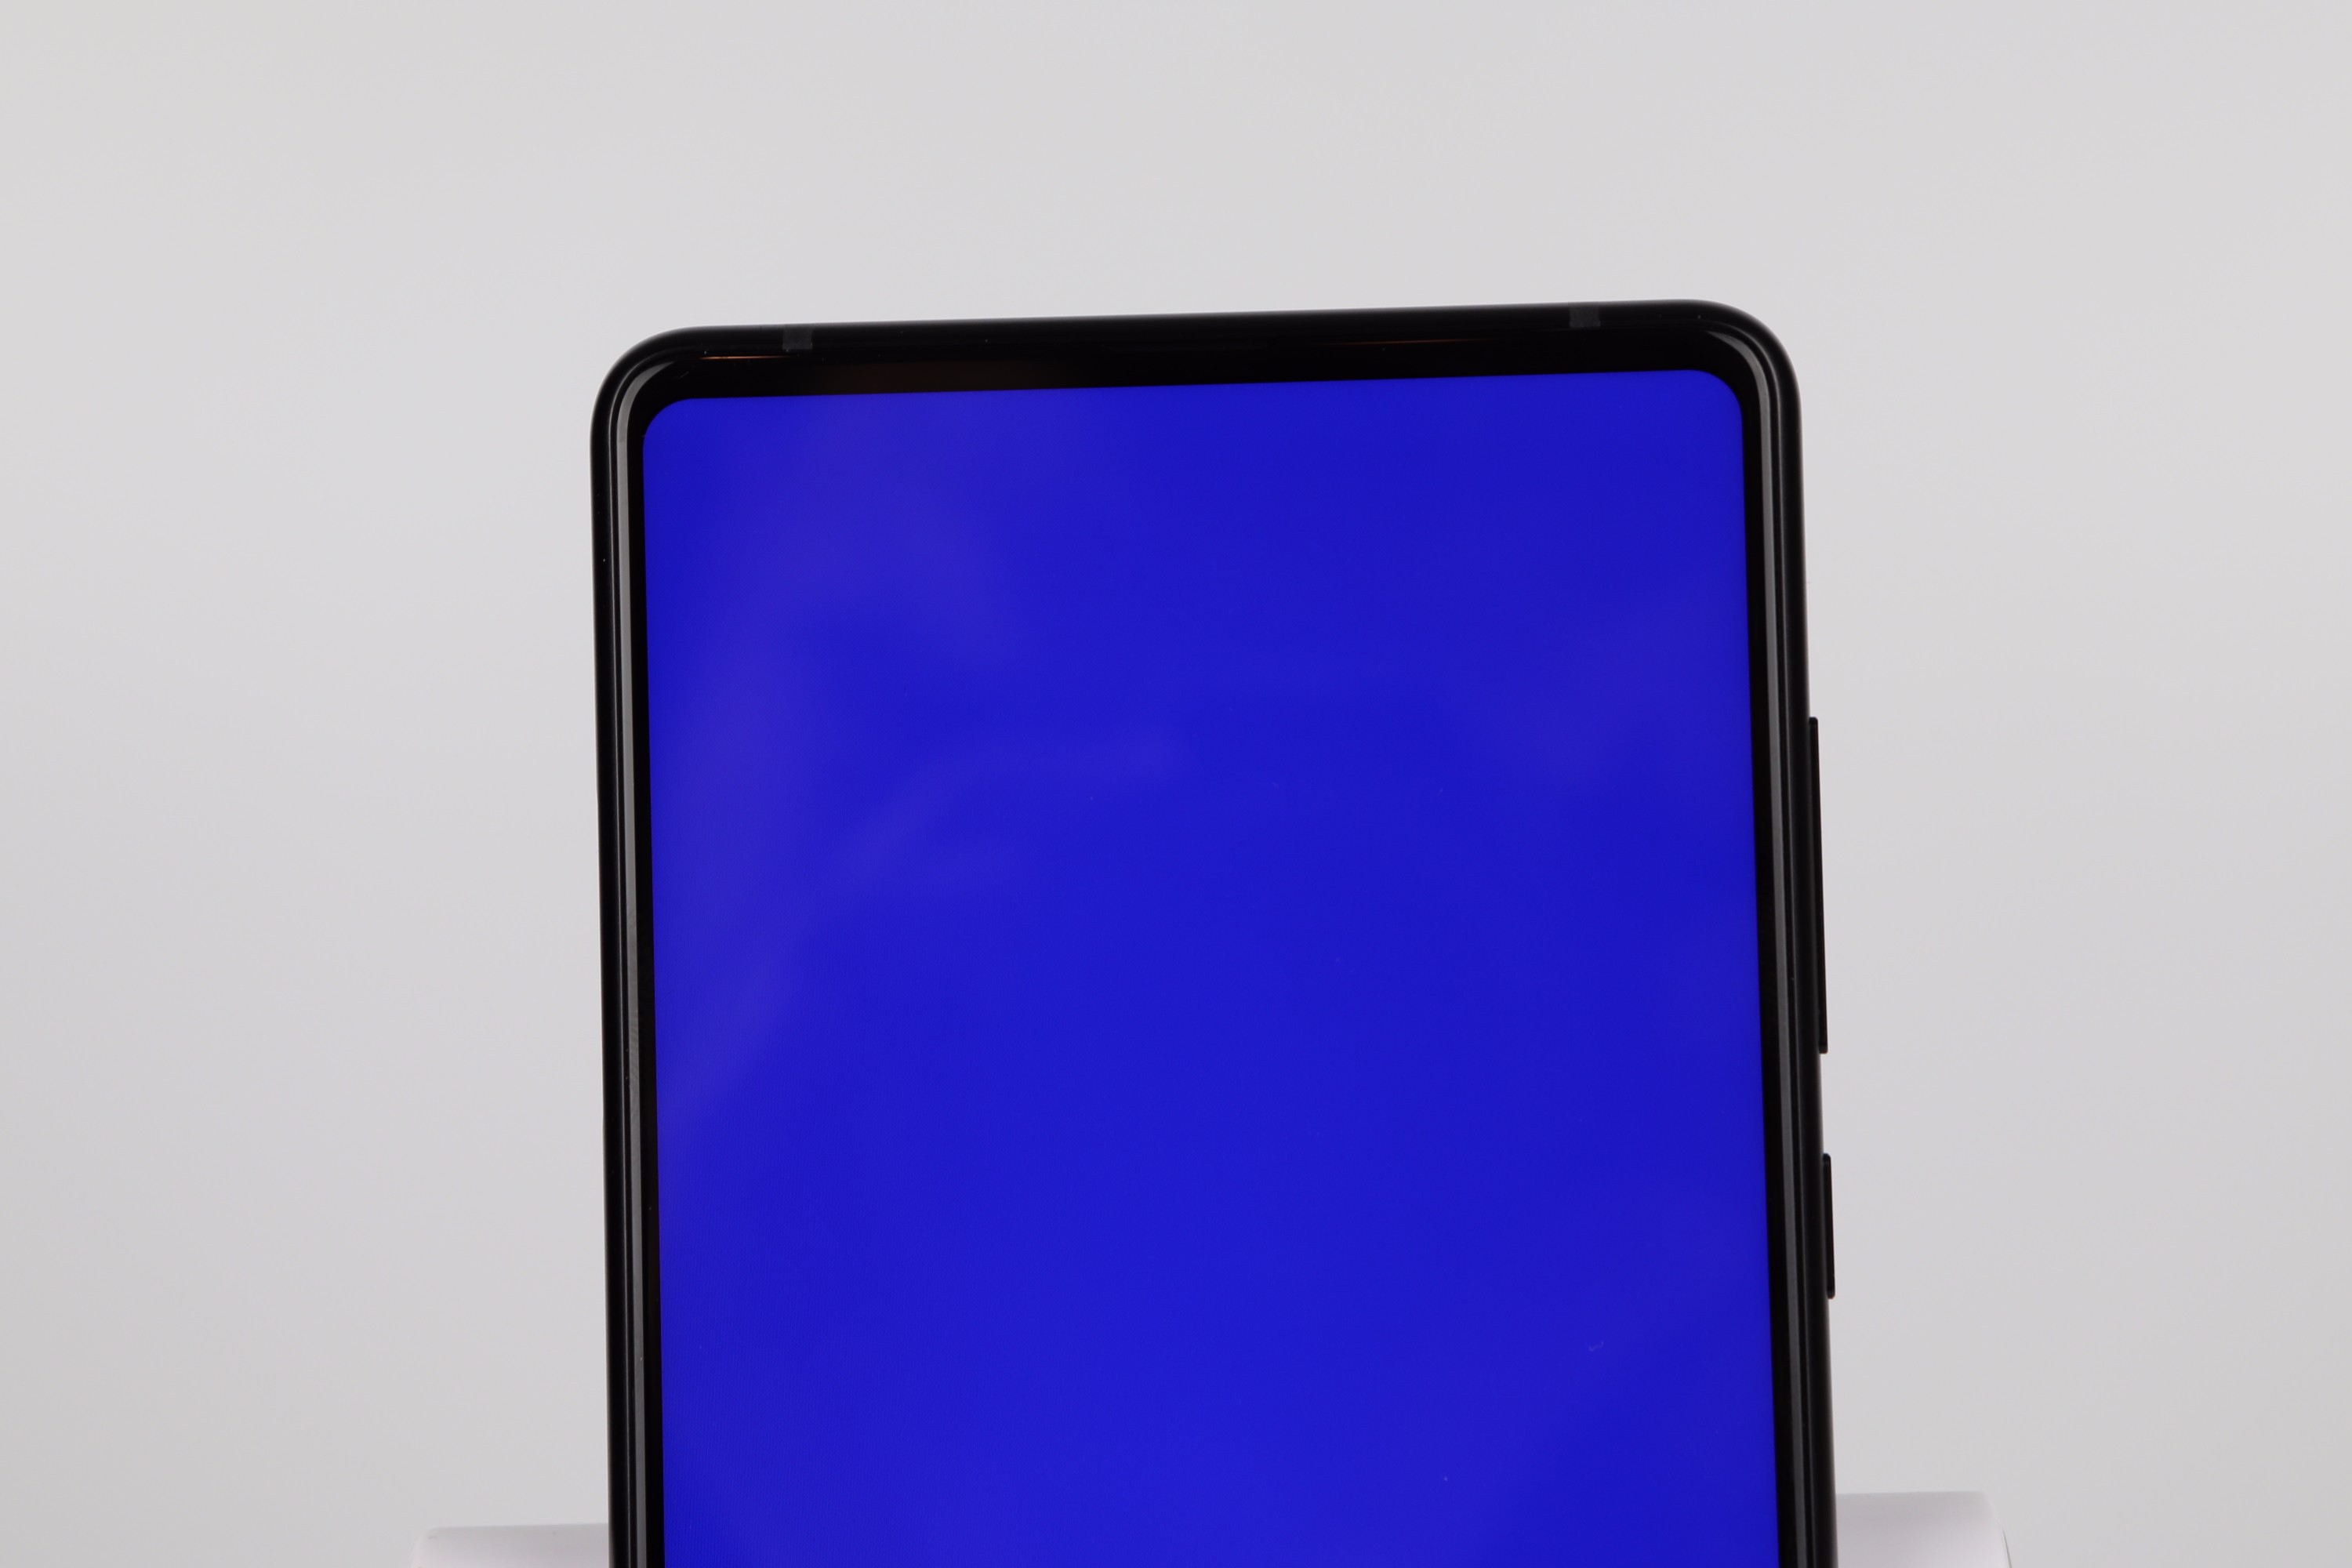 display XIaomi Mi Mix 2